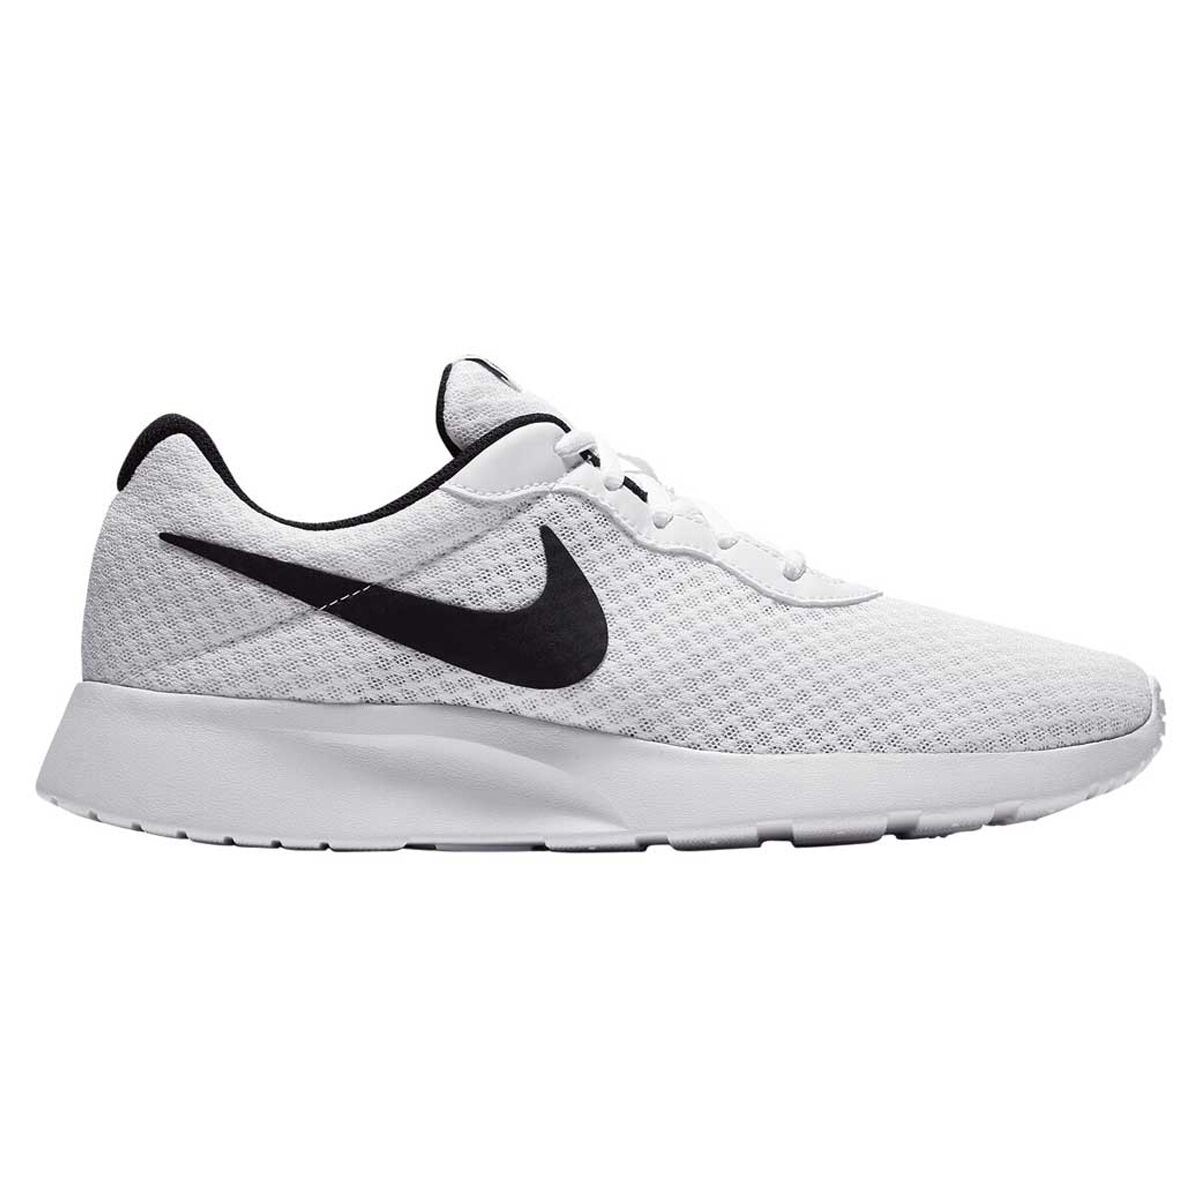 quality design 4bd8a 3b938 ... discount code for nike tanjun mens casual shoes white black us 10 white  black rebelhi 81be3